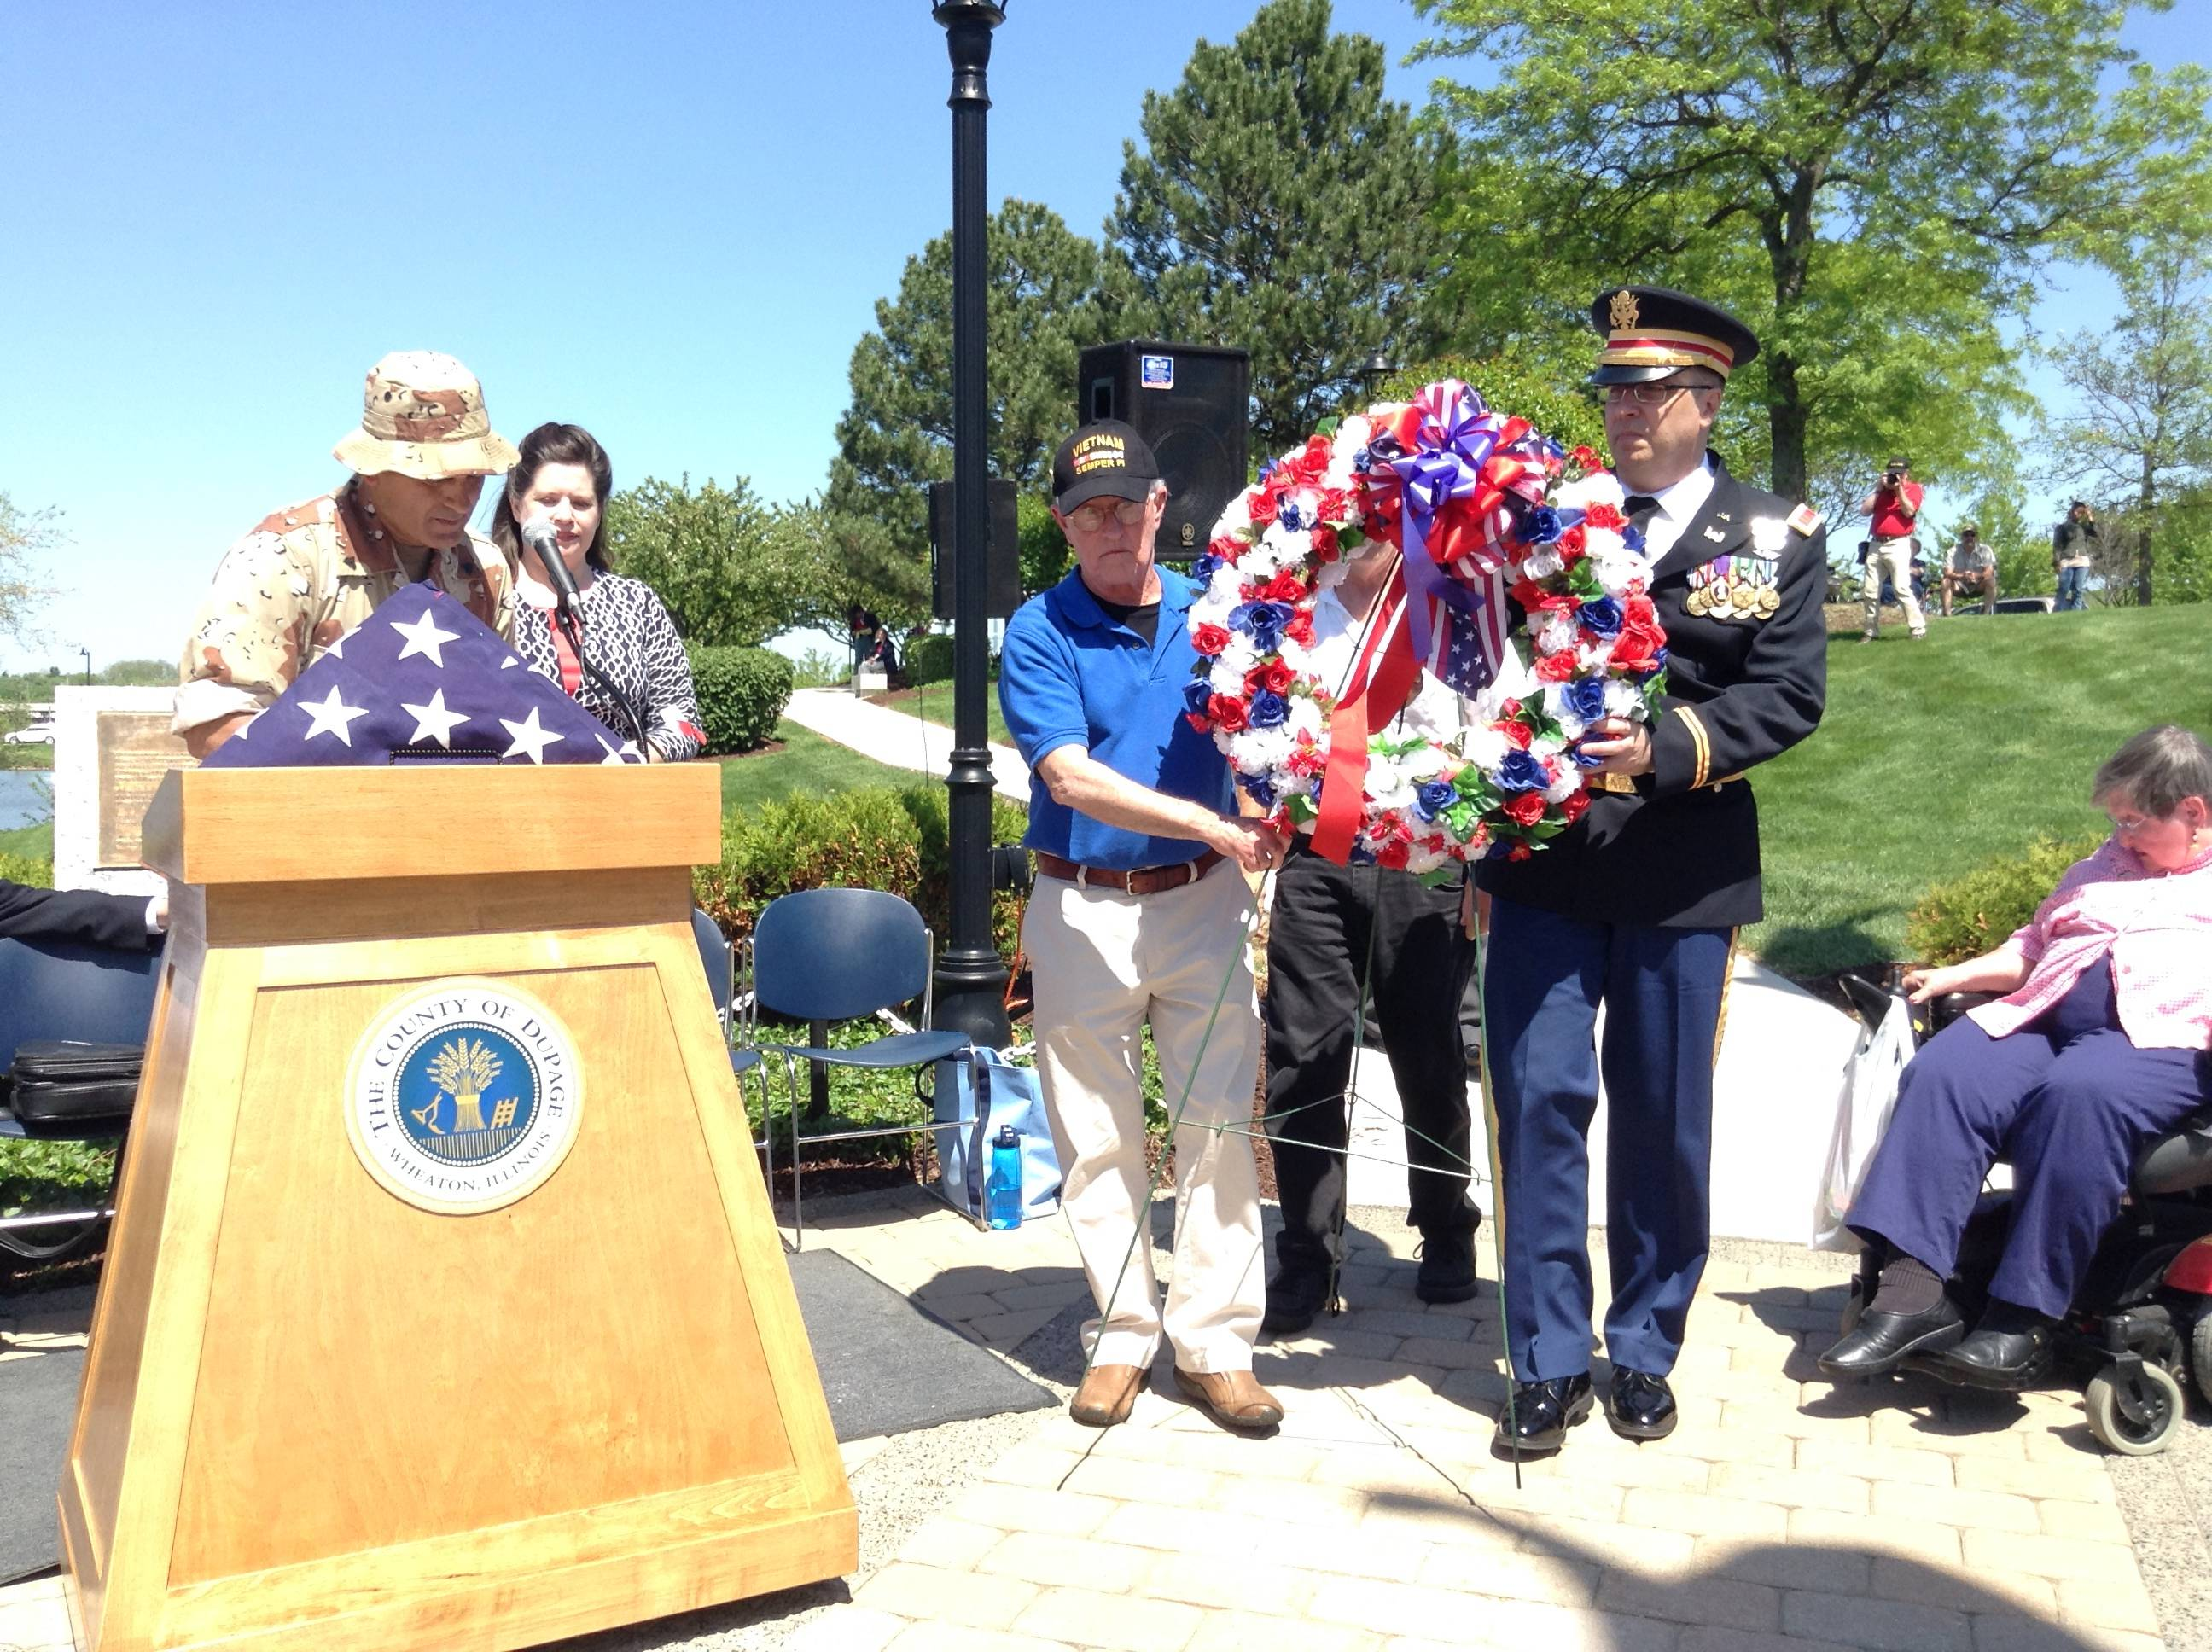 Capt. Ken Jacobs of Wheaton and Bob Adams of Winfield present a memorial wreath at the Memorial Day service Sunday at the DuPage County Veterans' Memorial in Wheaton.